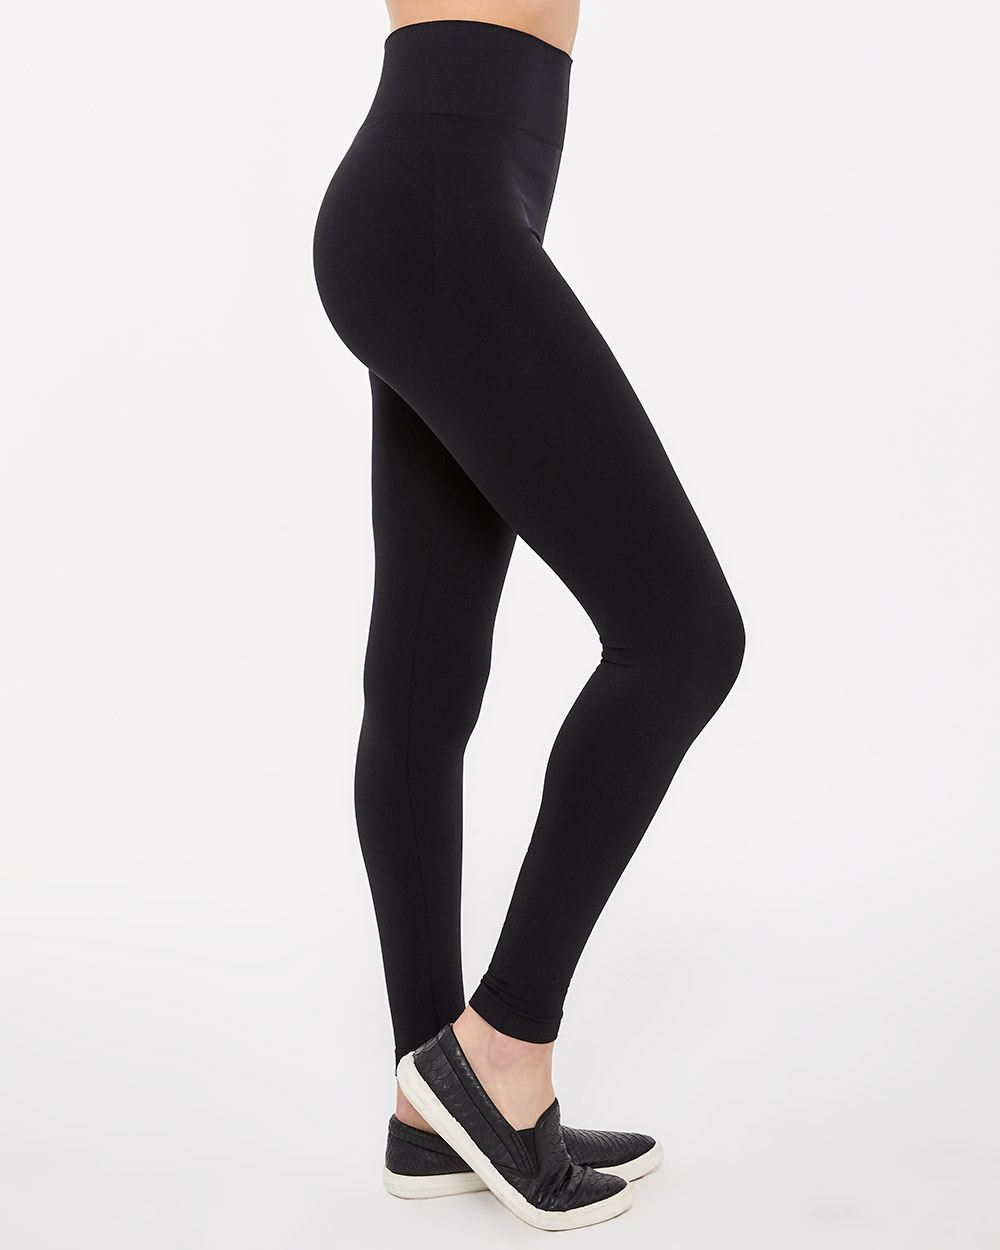 Form-Fitting Sculpting Leggings